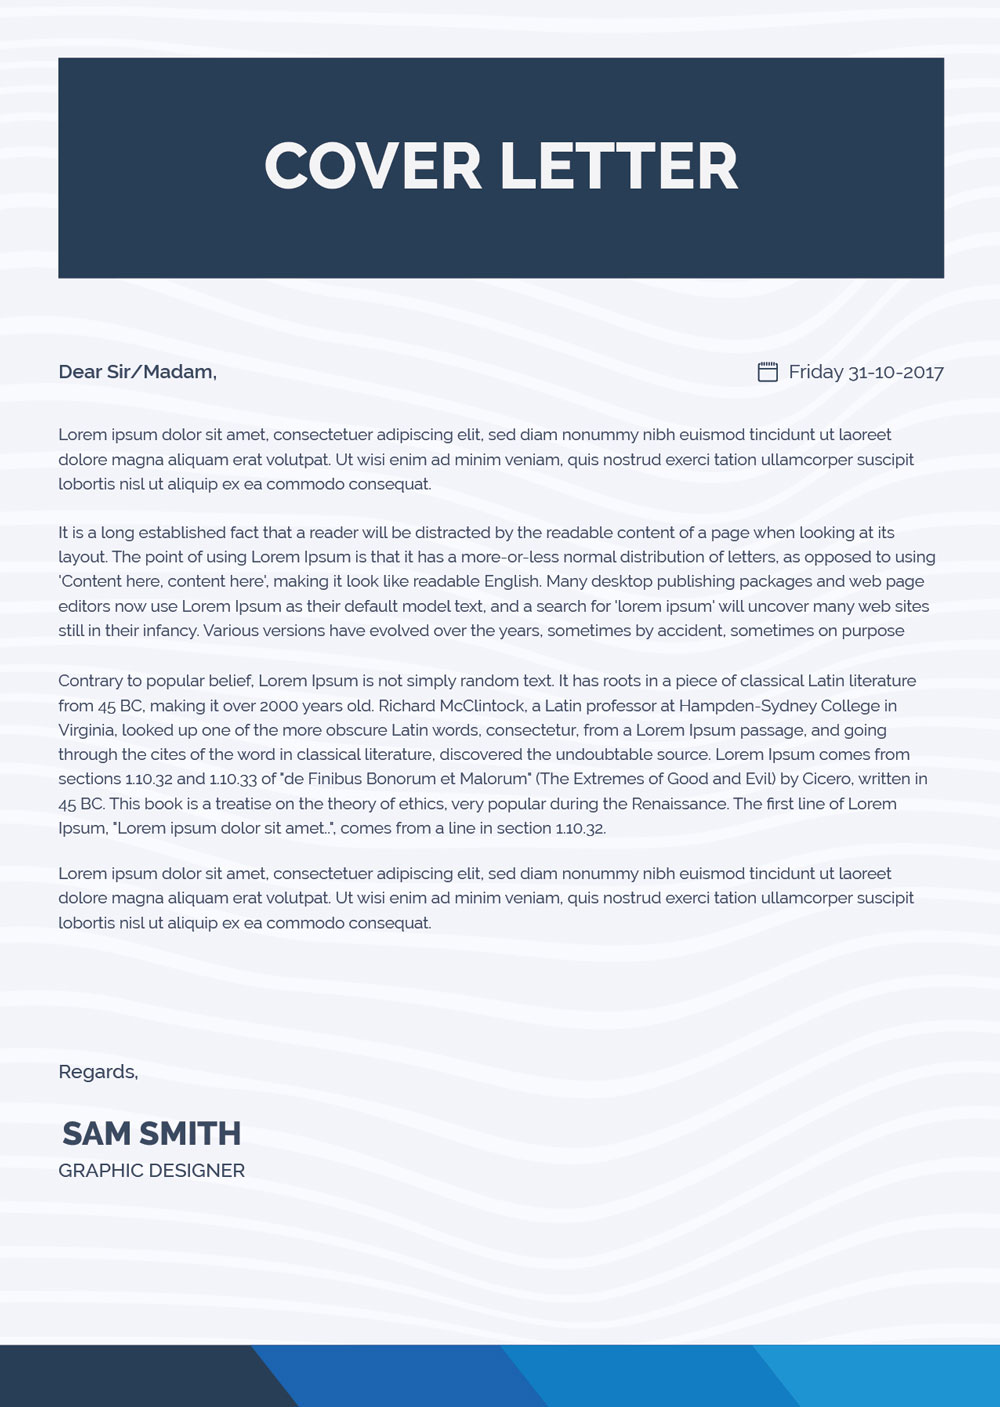 free ai resume  cv   cover letter  u0026 portfolio template for civil engineer